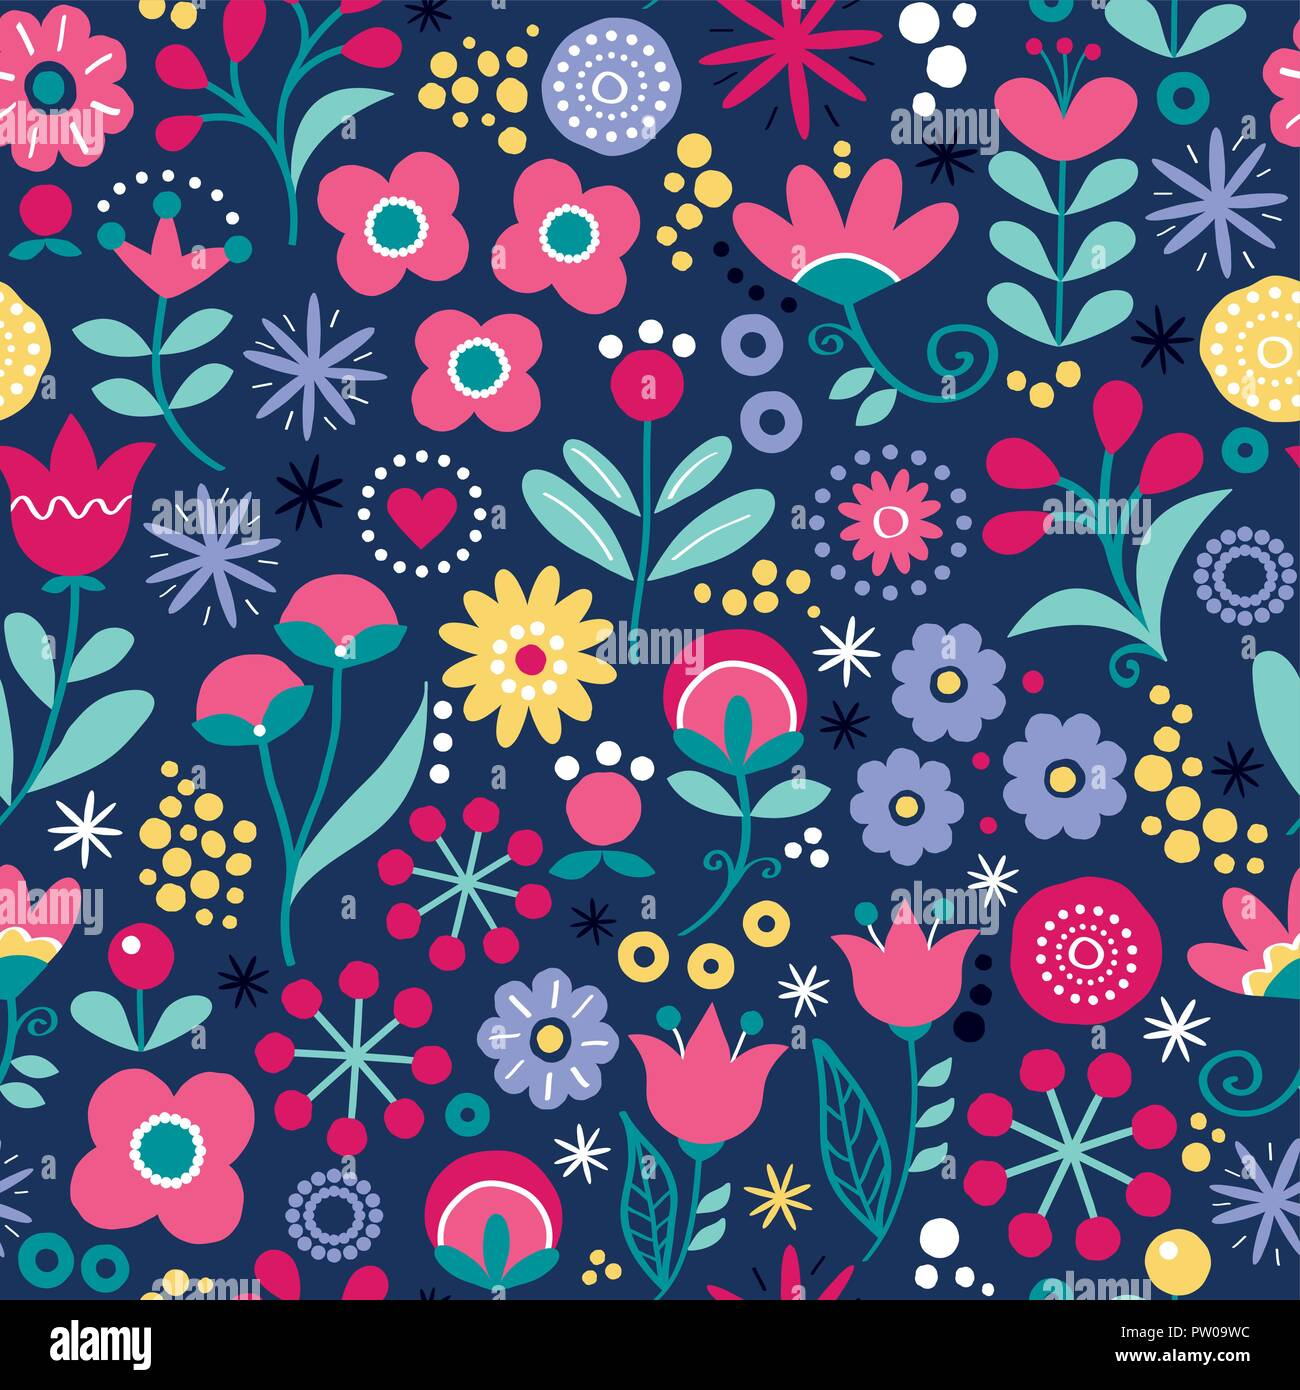 Floral seamless vector folk art pattern - hand drawn vintage Scandinavian style textile design with pink and yellow flowers on navy blue - Stock Image